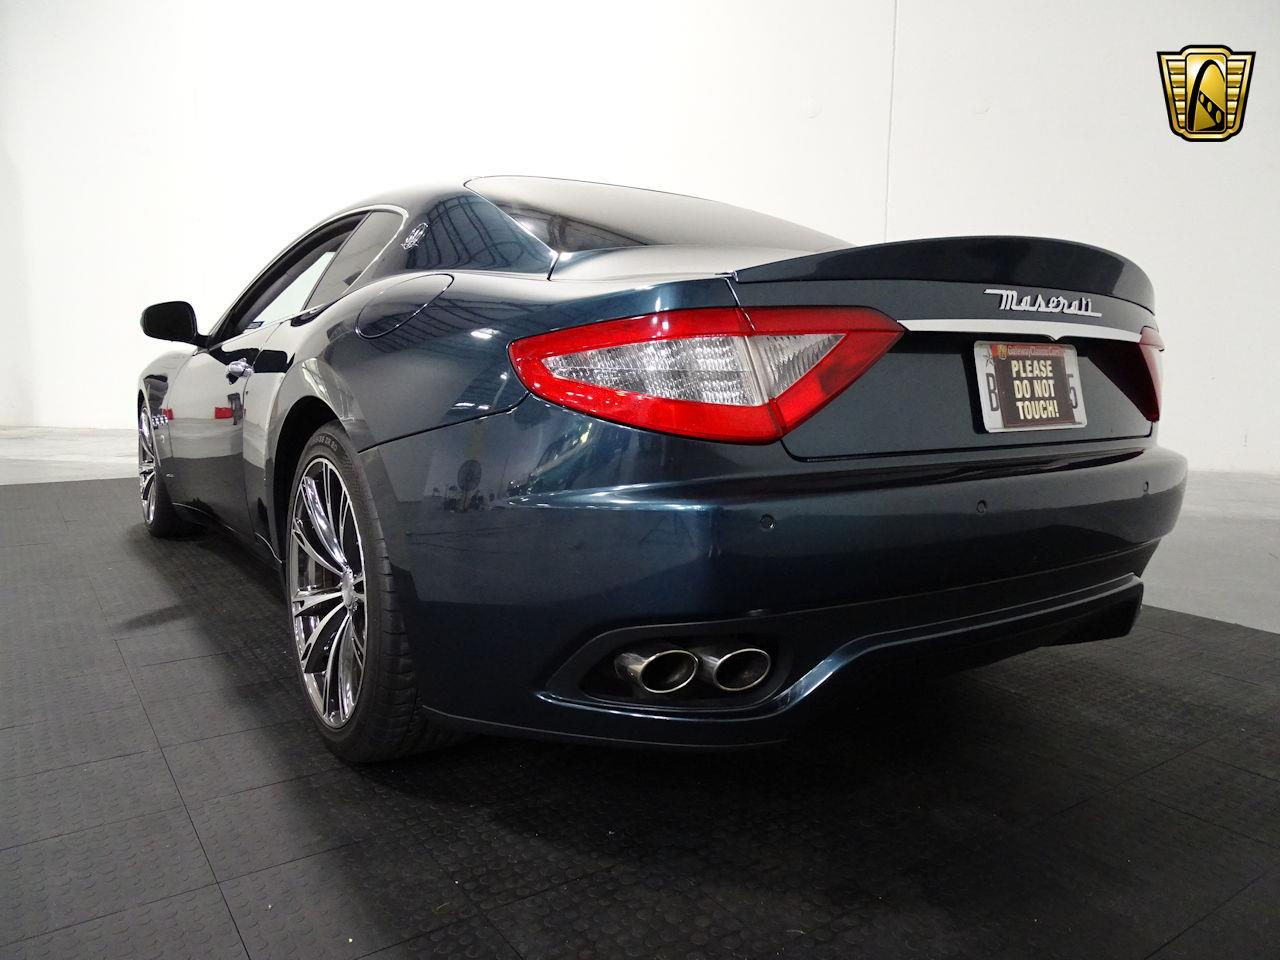 Large Picture of 2008 Maserati GranTurismo located in Texas - $42,995.00 Offered by Gateway Classic Cars - Houston - MO4H